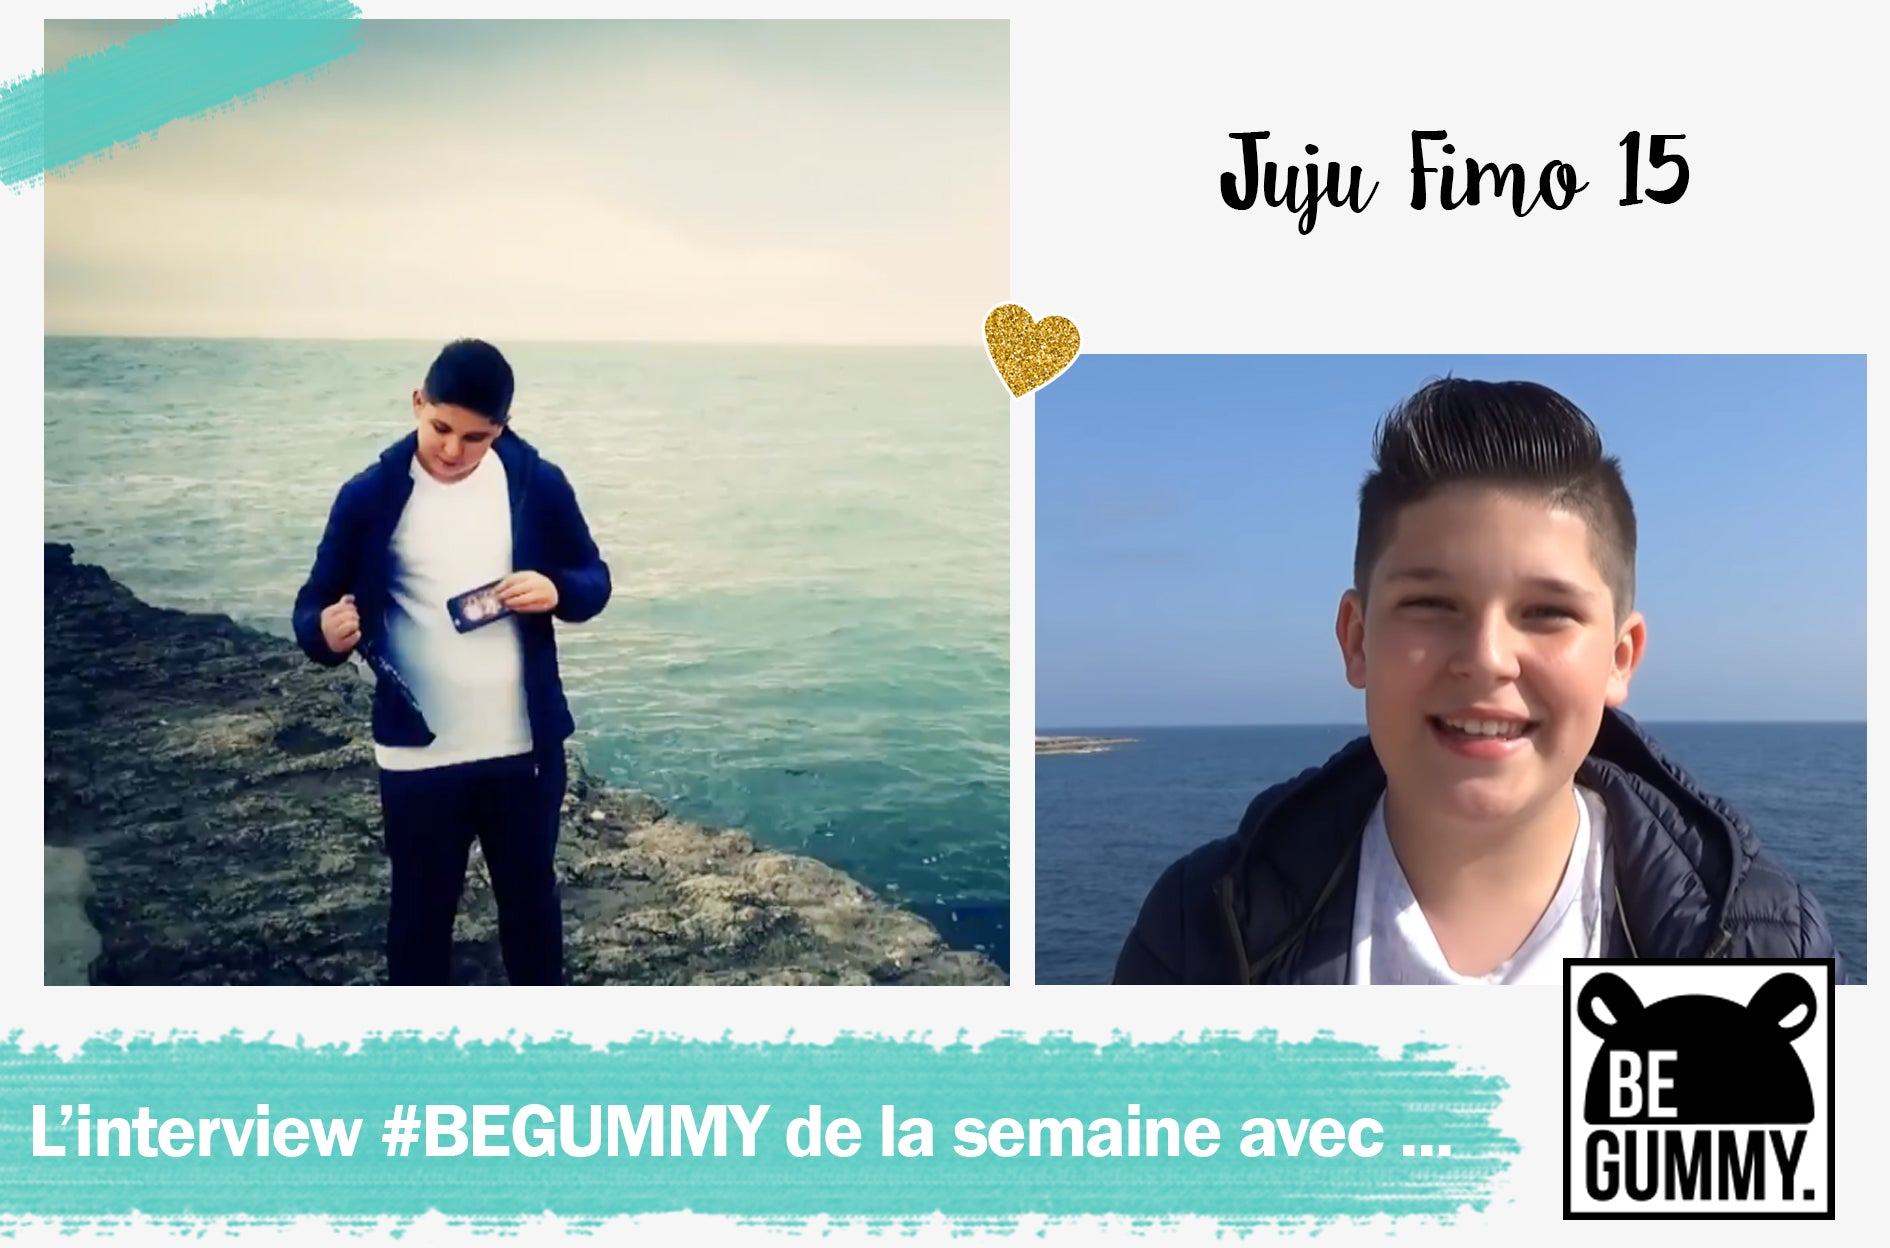 L'interview #BEGUMMY avec... Juju Fimo 15